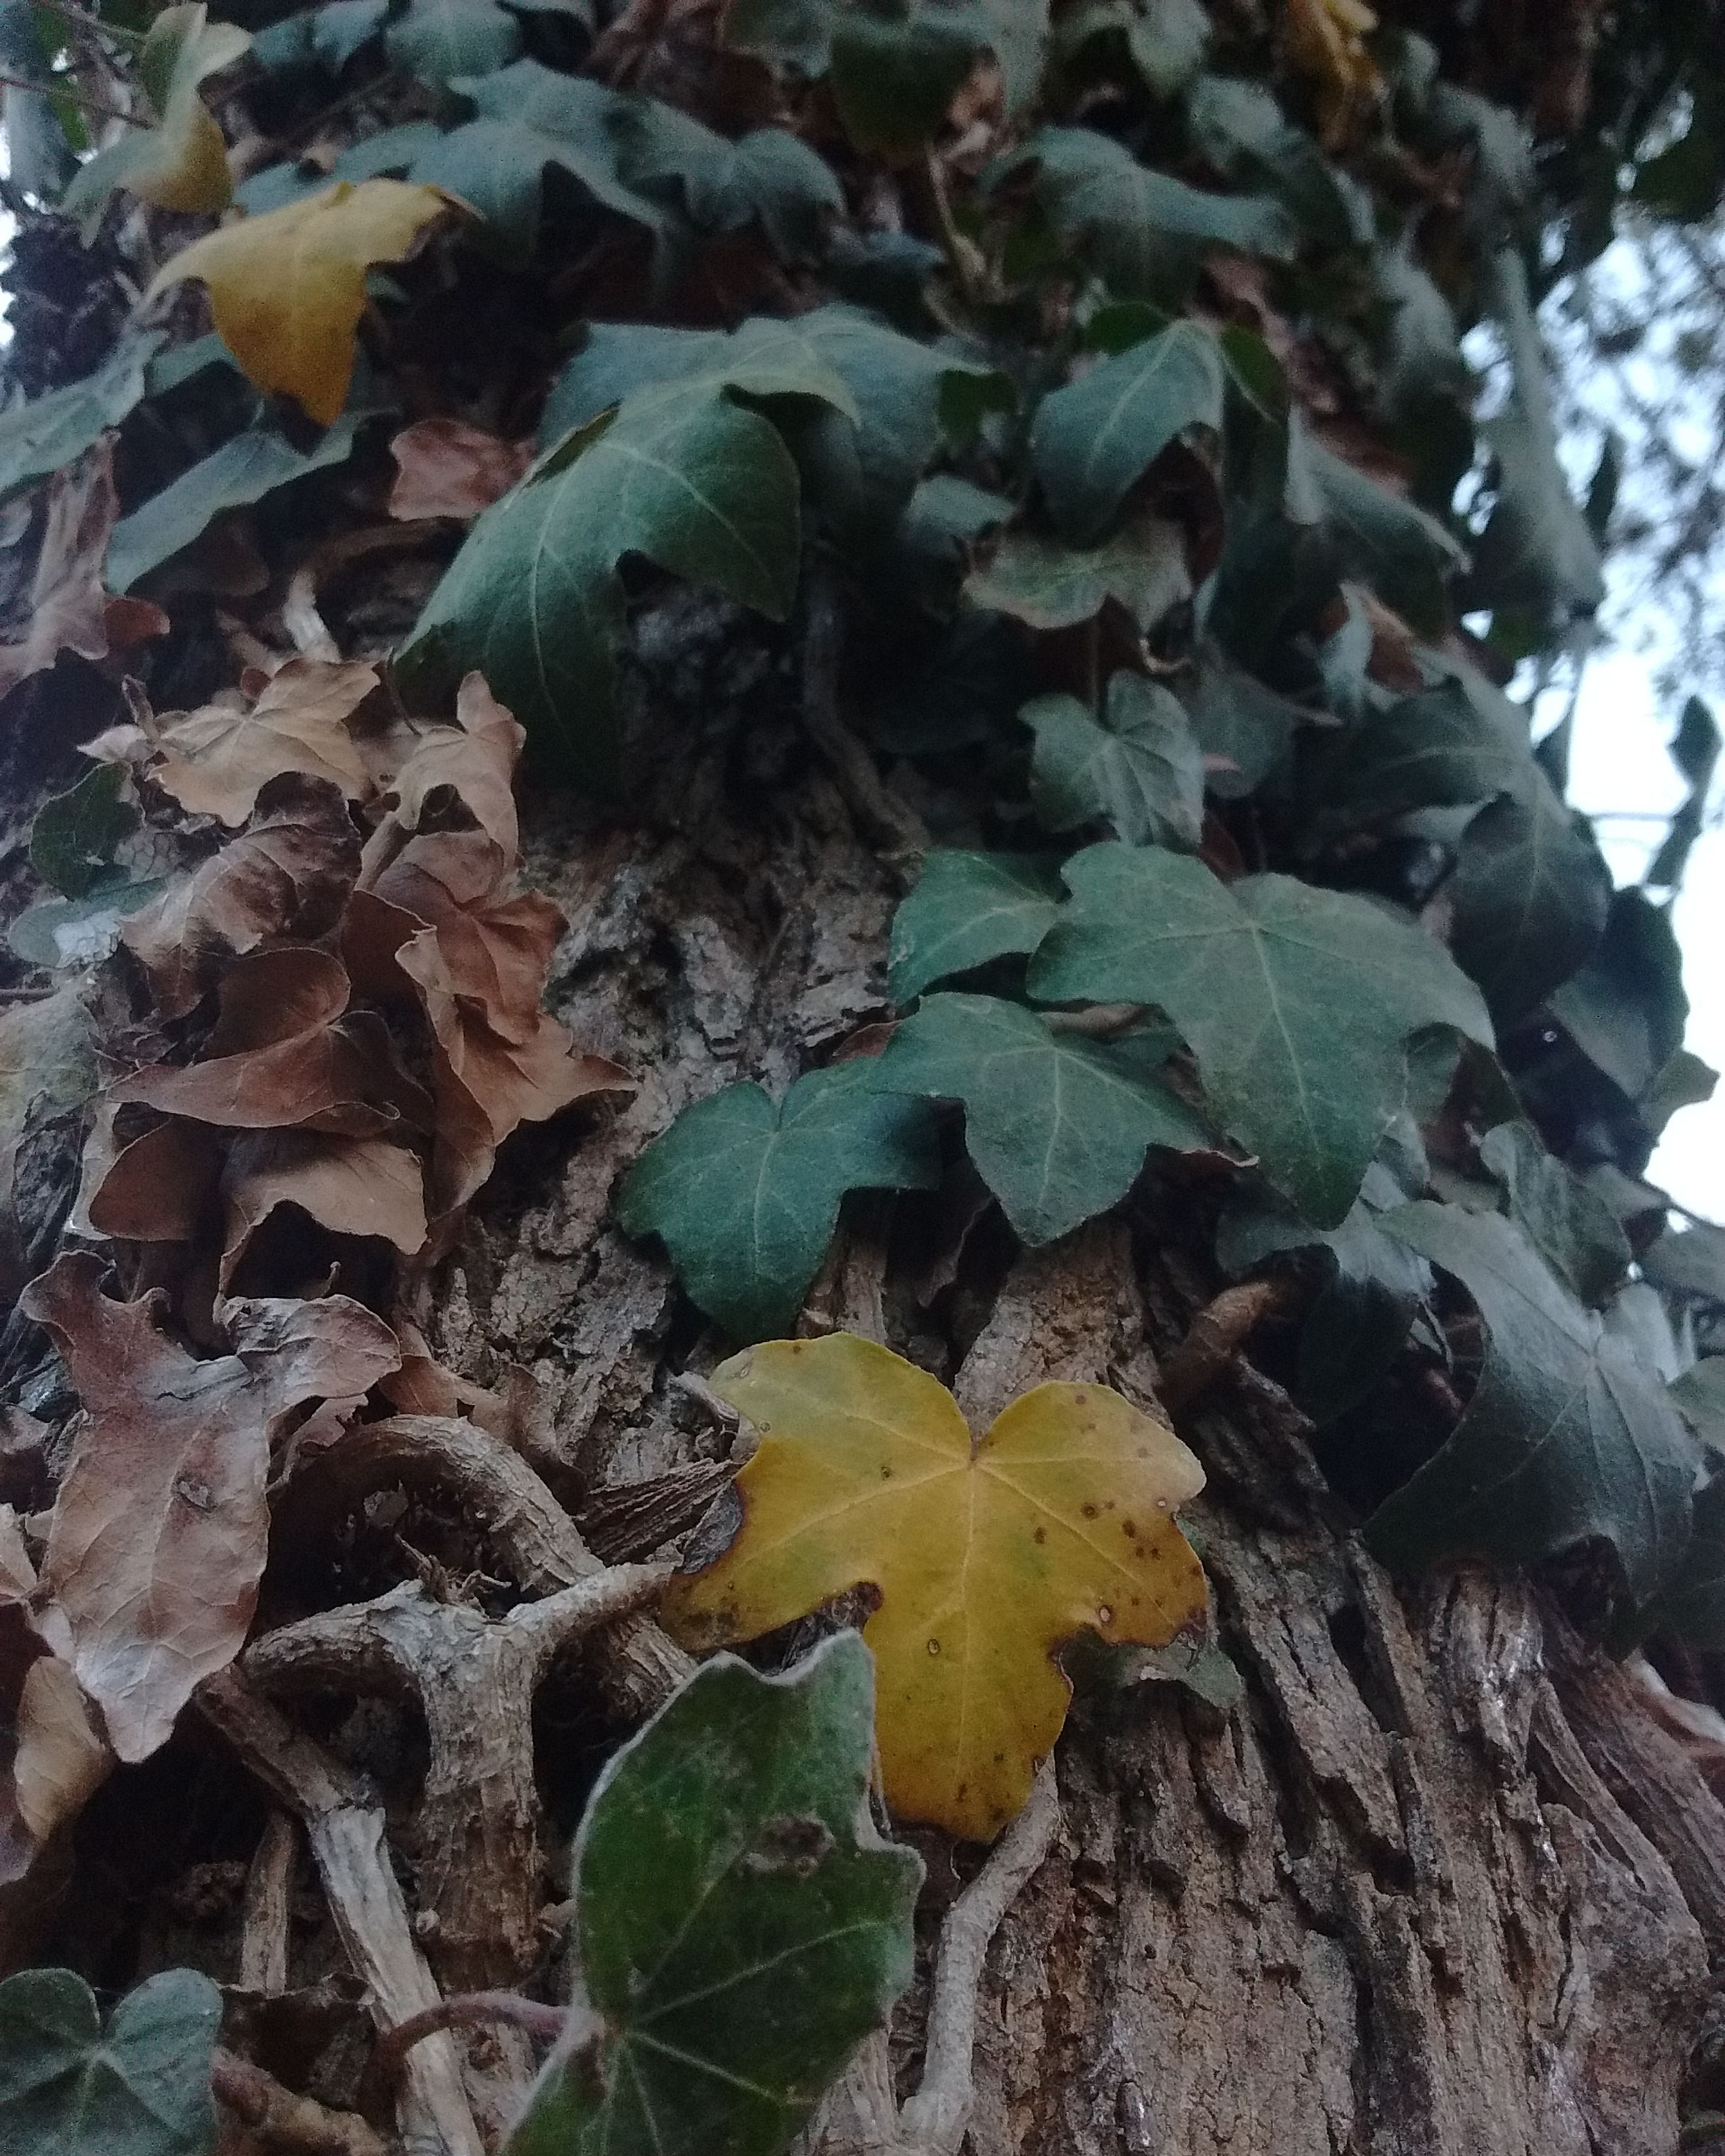 leaf, growth, fragility, nature, no people, close-up, day, plant, green color, beauty in nature, outdoors, fungus, tree trunk, tree, freshness, toadstool